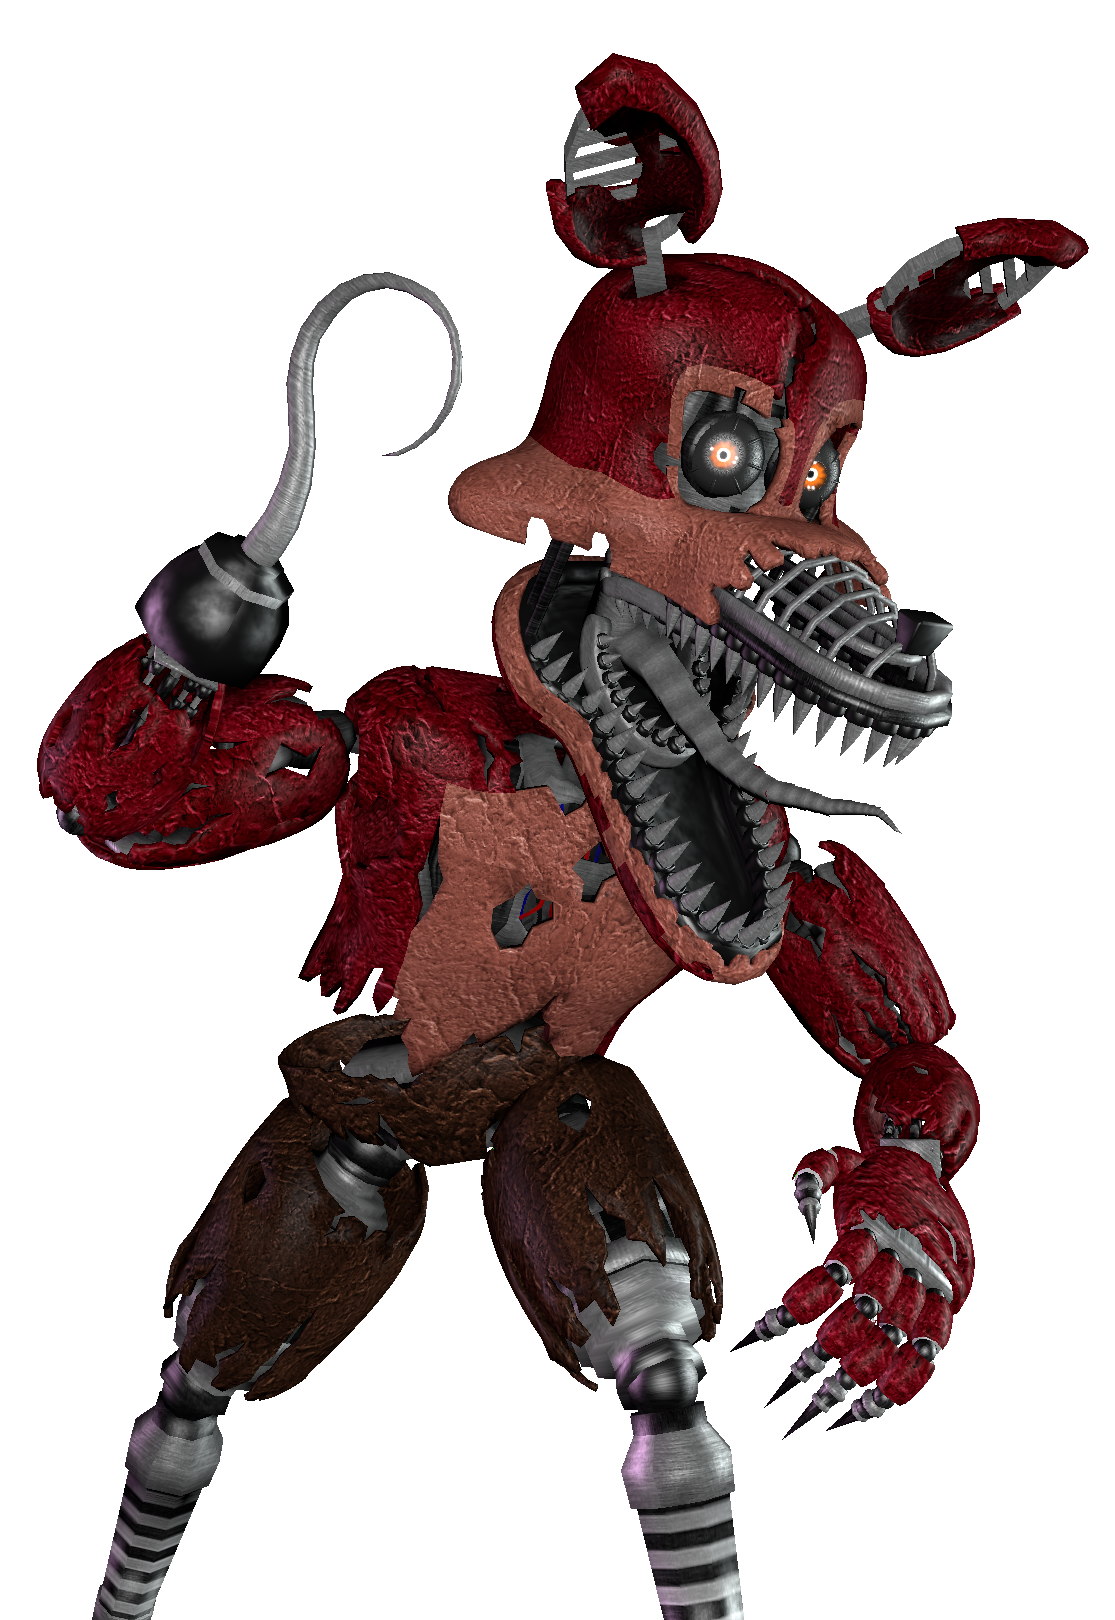 Nightmare Foxy [Render] (SFM) by Arrancon - Nightmare Foxy PNG